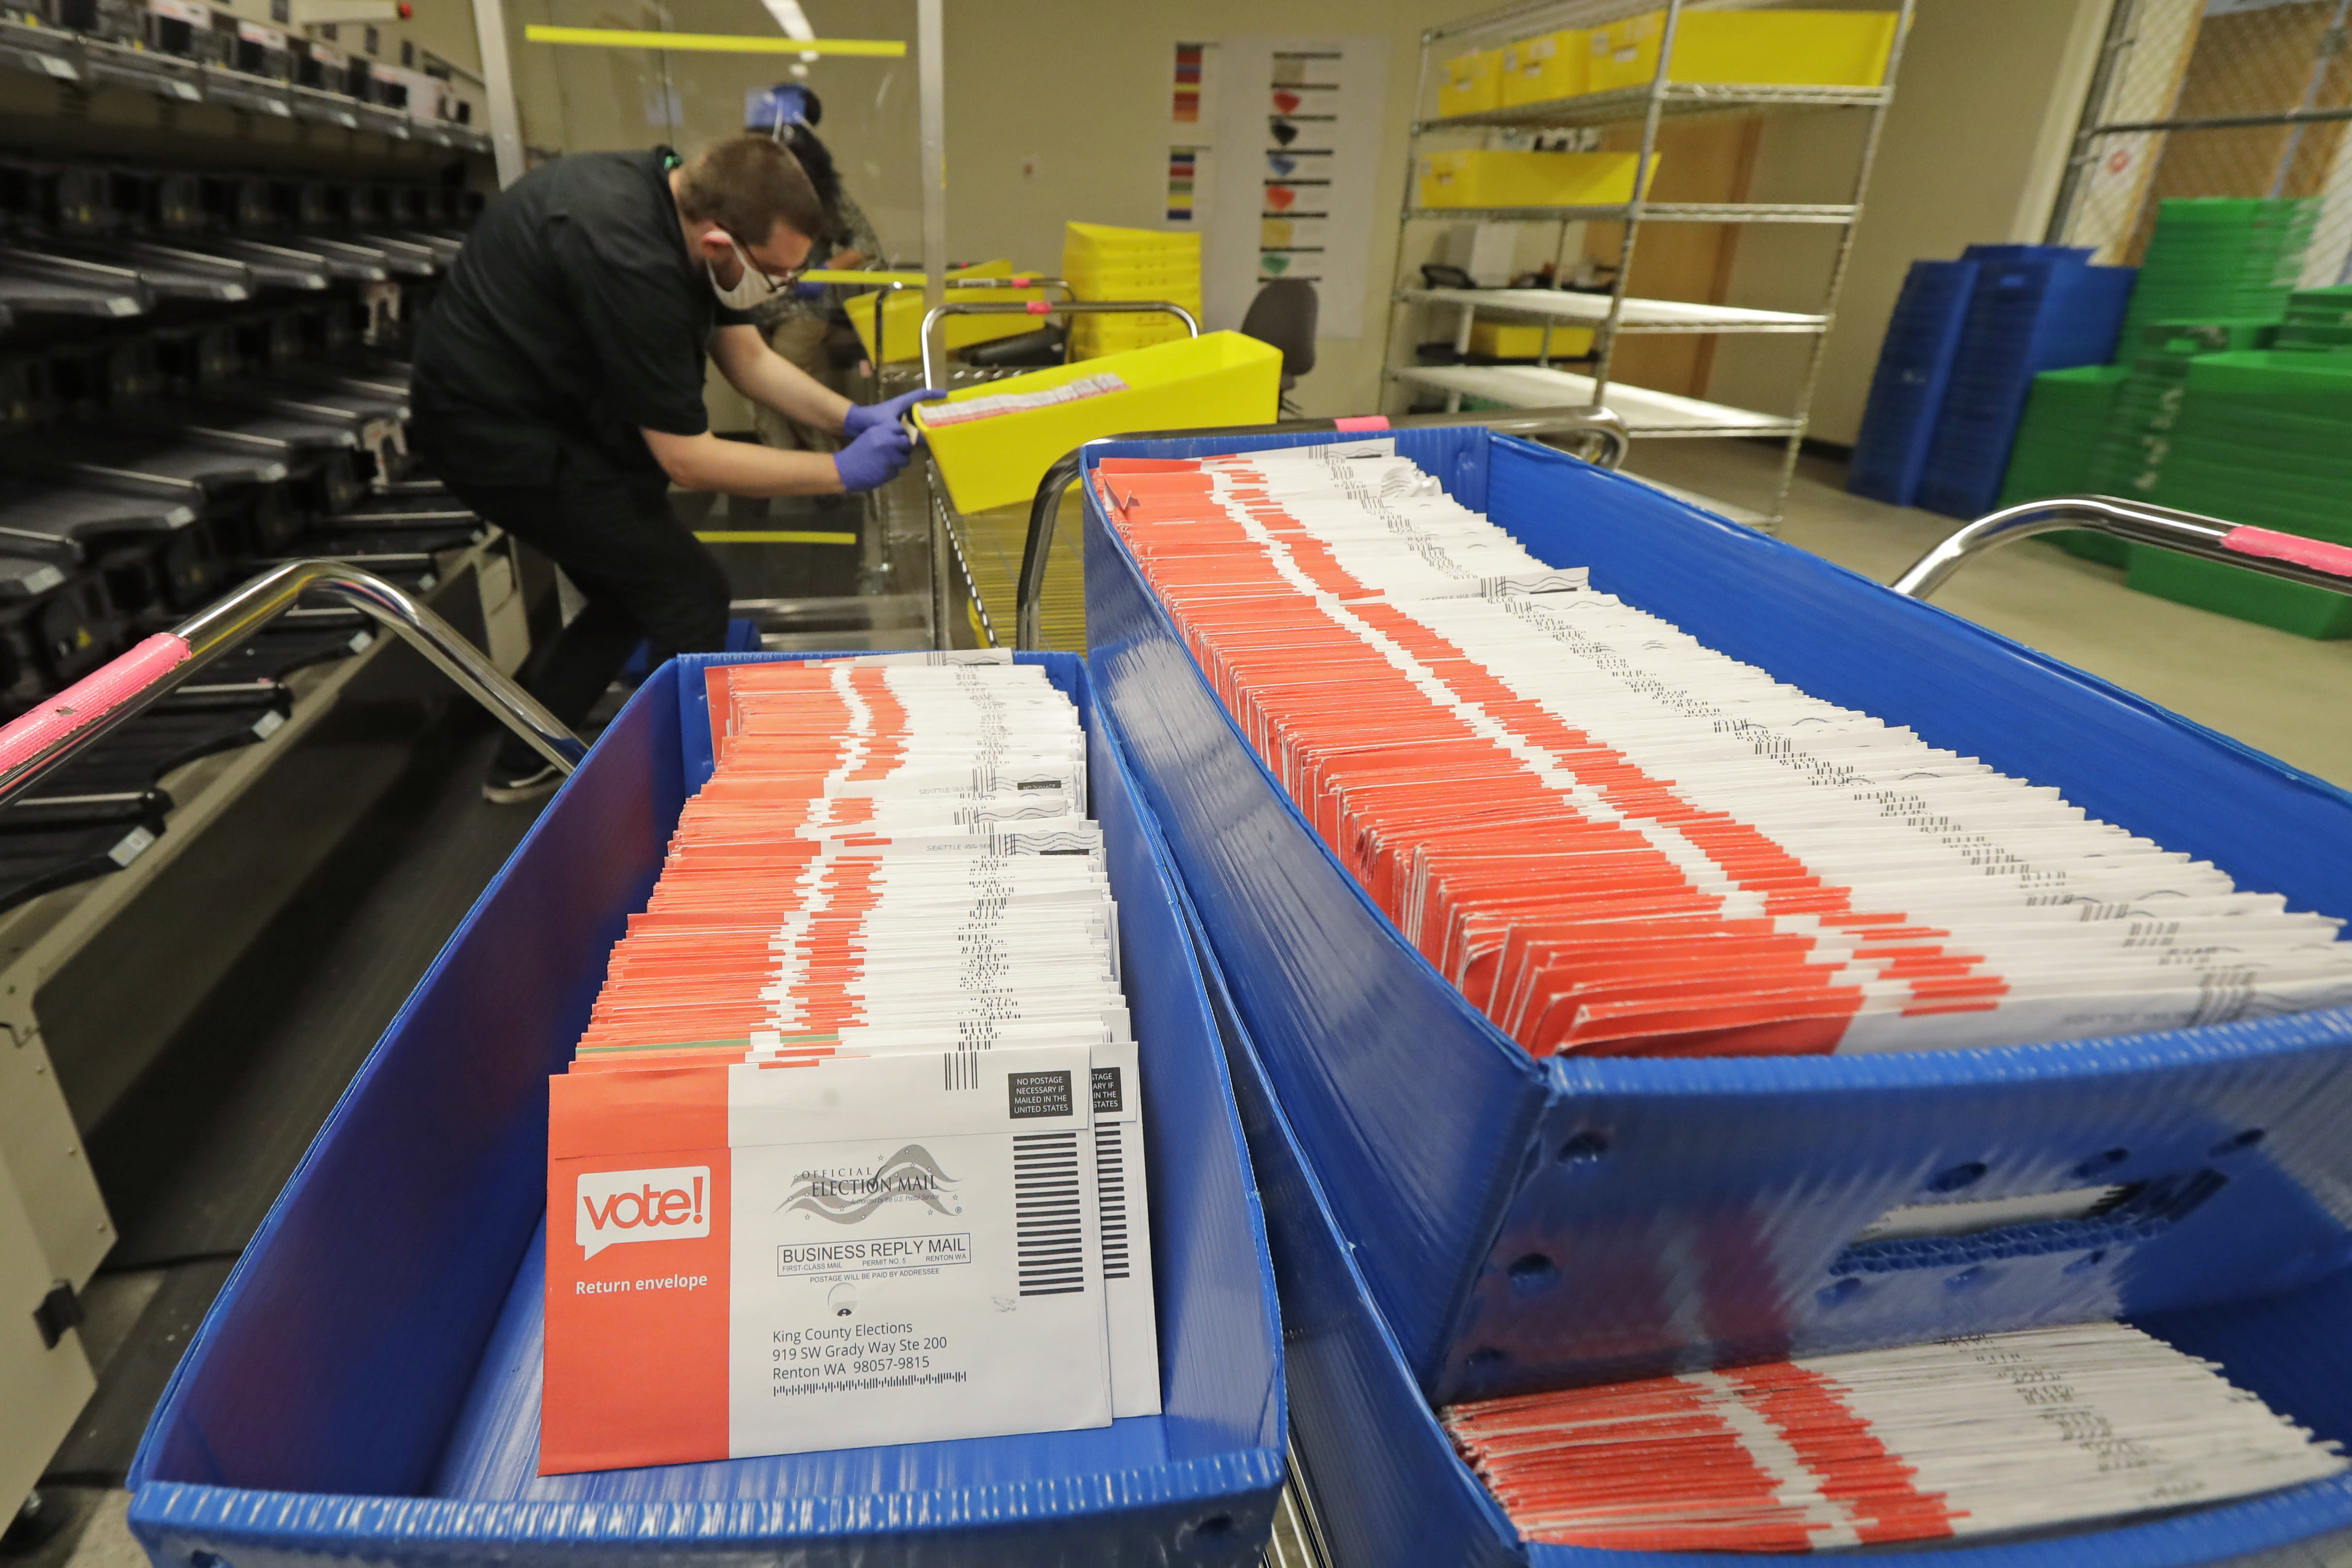 FILE - In this Aug. 5, 2020, file photo, vote-by-mail ballots are shown in sorting trays at the King County Elections headquarters in Renton, Wash., south of Seattle. In every U.S. presidential election, thousands of ballots are rejected and never counted. They may have arrived after Election Day or were missing a voter's signature. That number will be far higher this year as the coronavirus pandemic forces tens of millions of Americans to vote by mail for the first time. (AP Photo/Ted S. Warren, File)